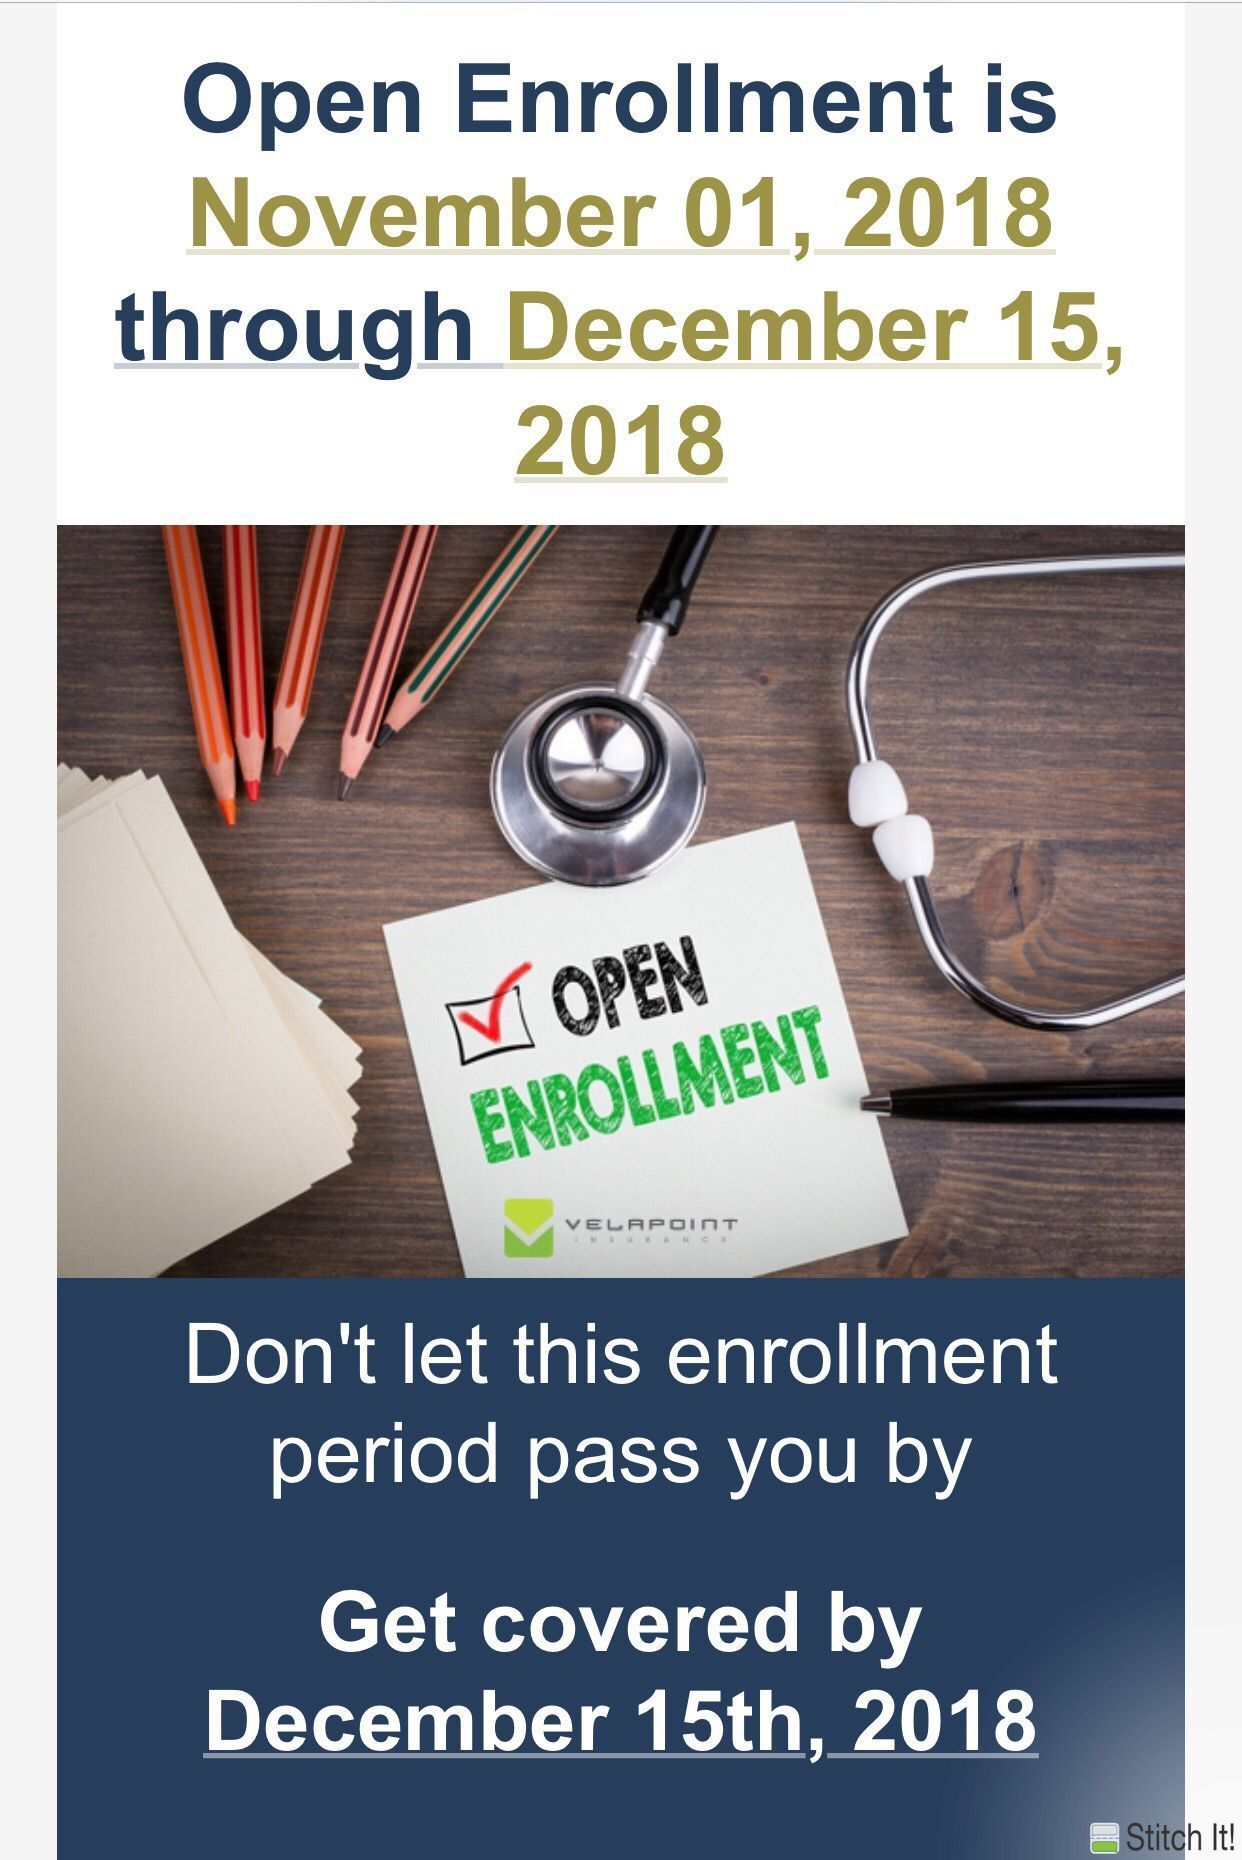 Open enrollment isn't just about purchasing health